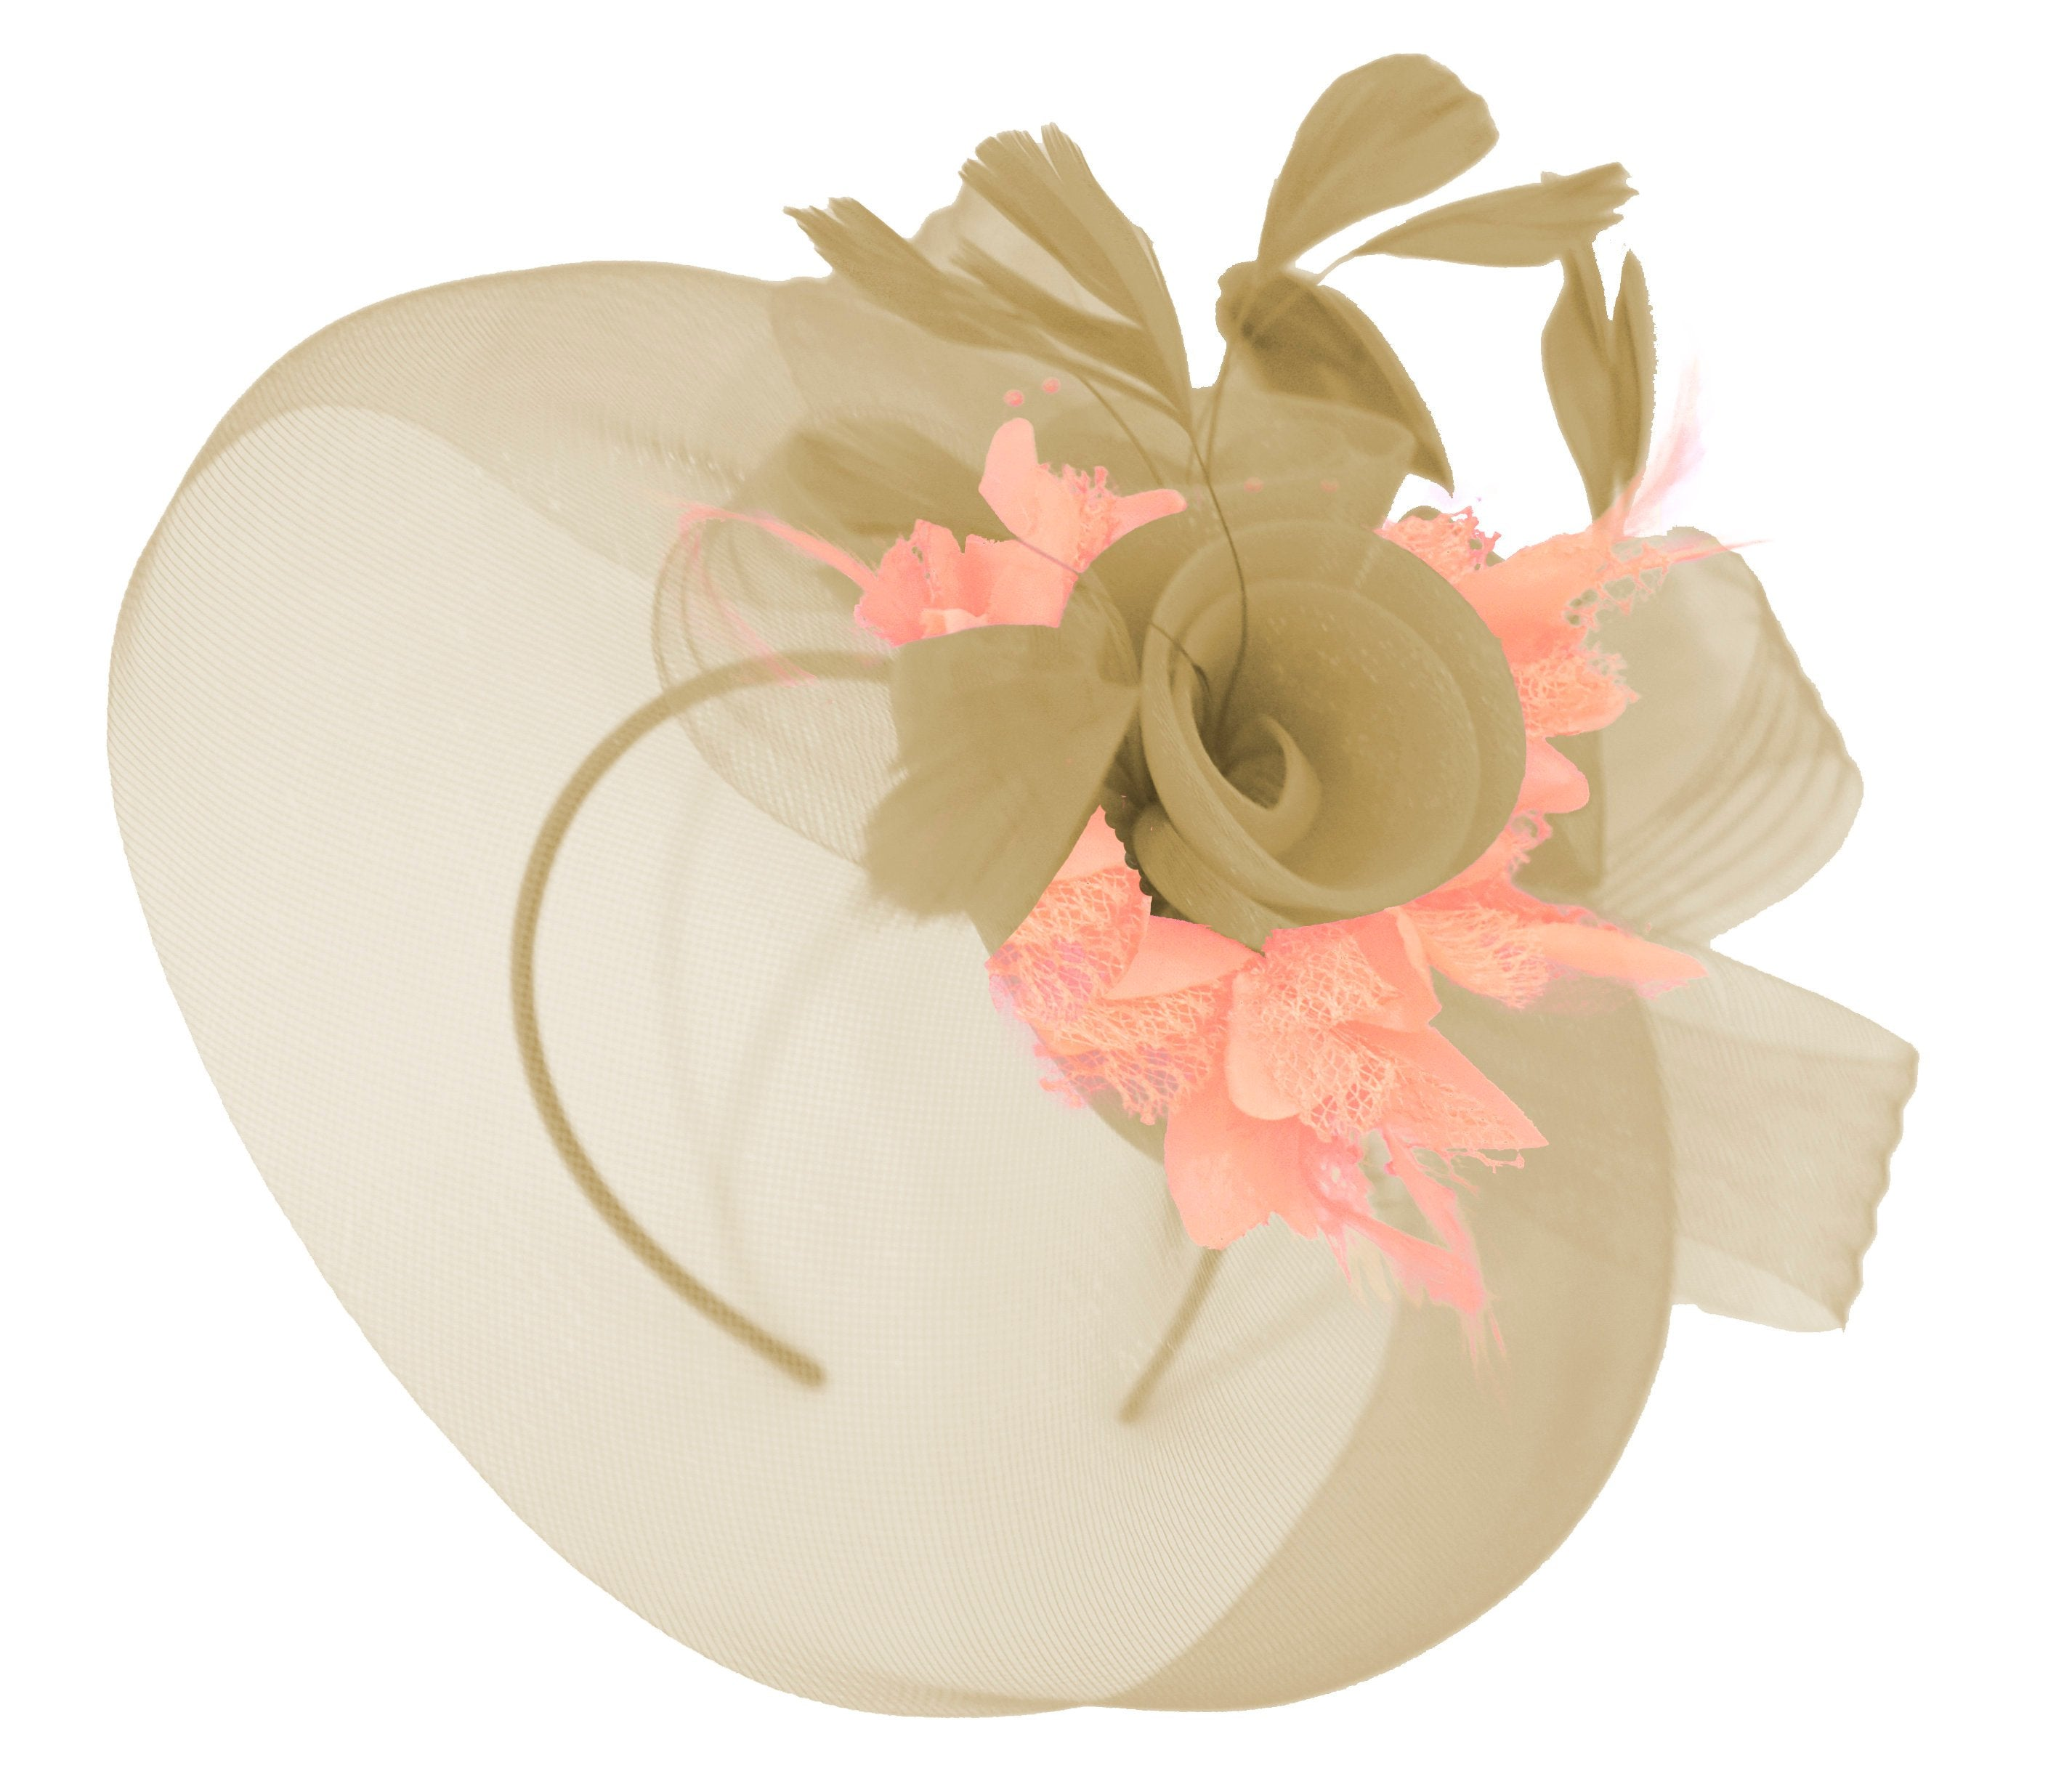 Caprilite Beige Camel and Peach Nude Fascinator Hat Veil Net Hair Clip Ascot Derby Races Wedding Headband Feather Flower